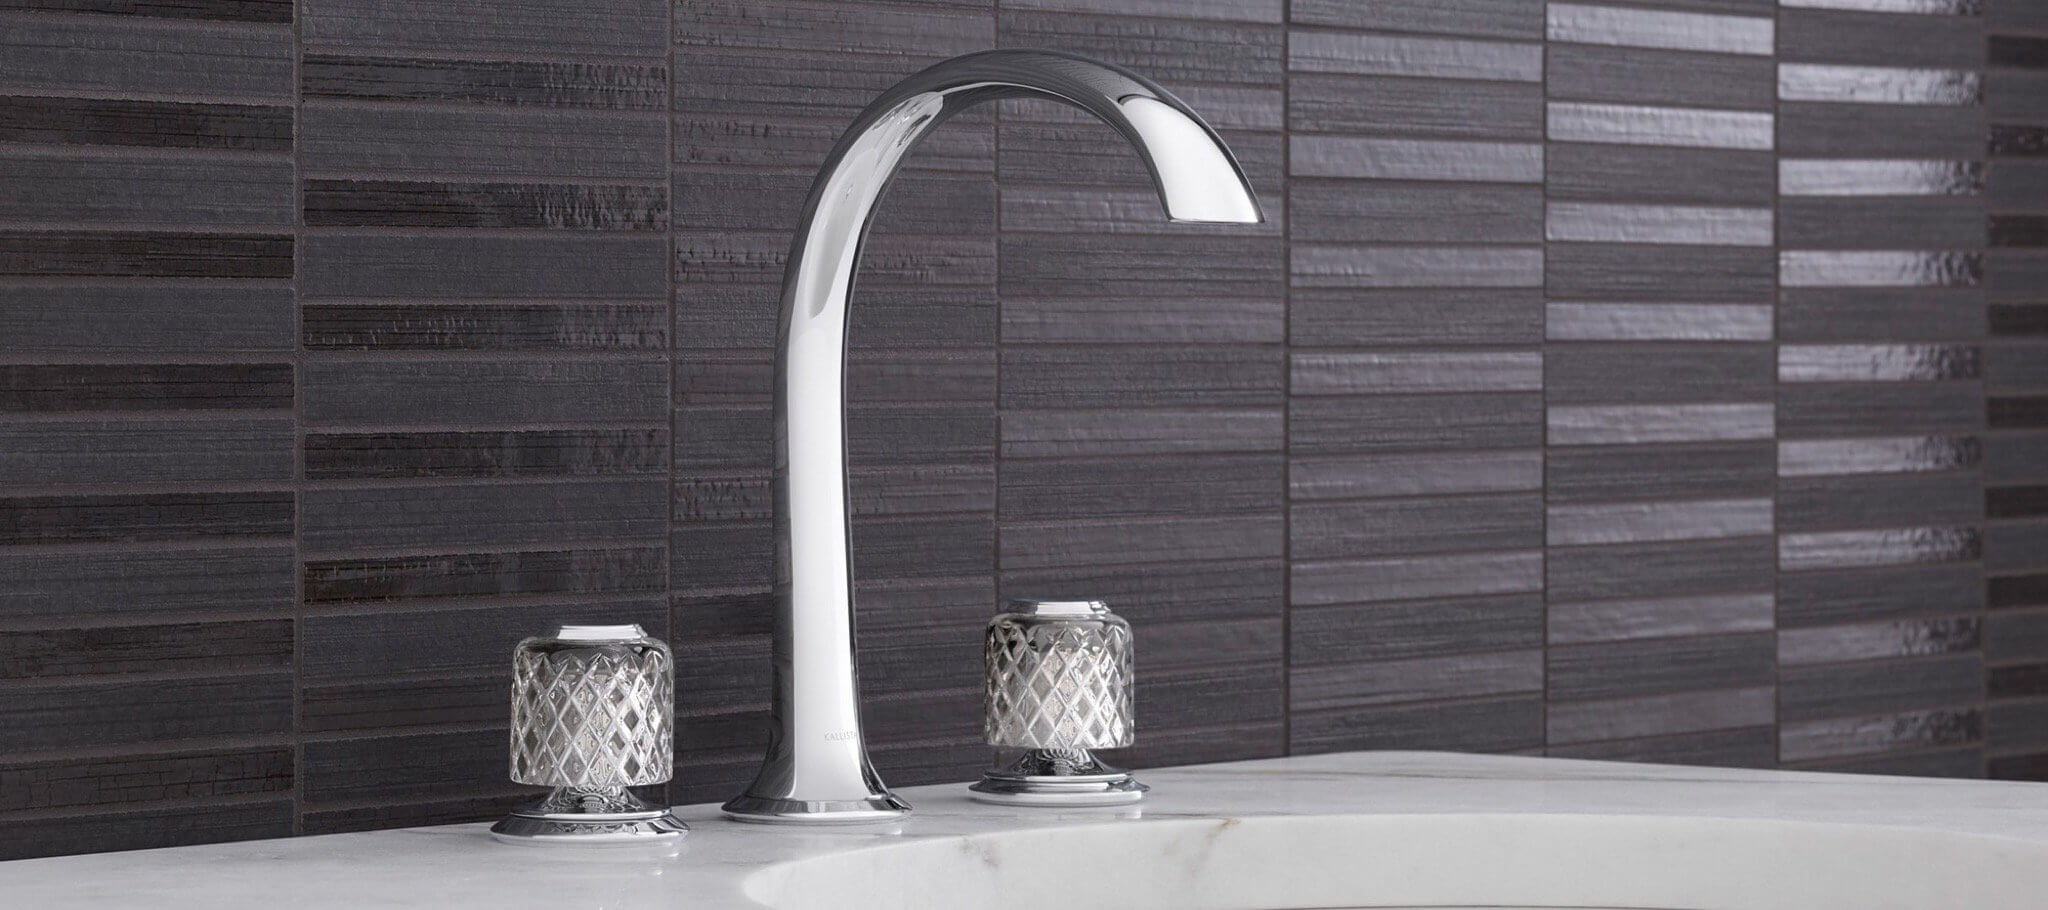 kallista script faucet with crystal knob handles in polished nickel and high spout - the ultimate guide to luxury plumbing by the delight of design